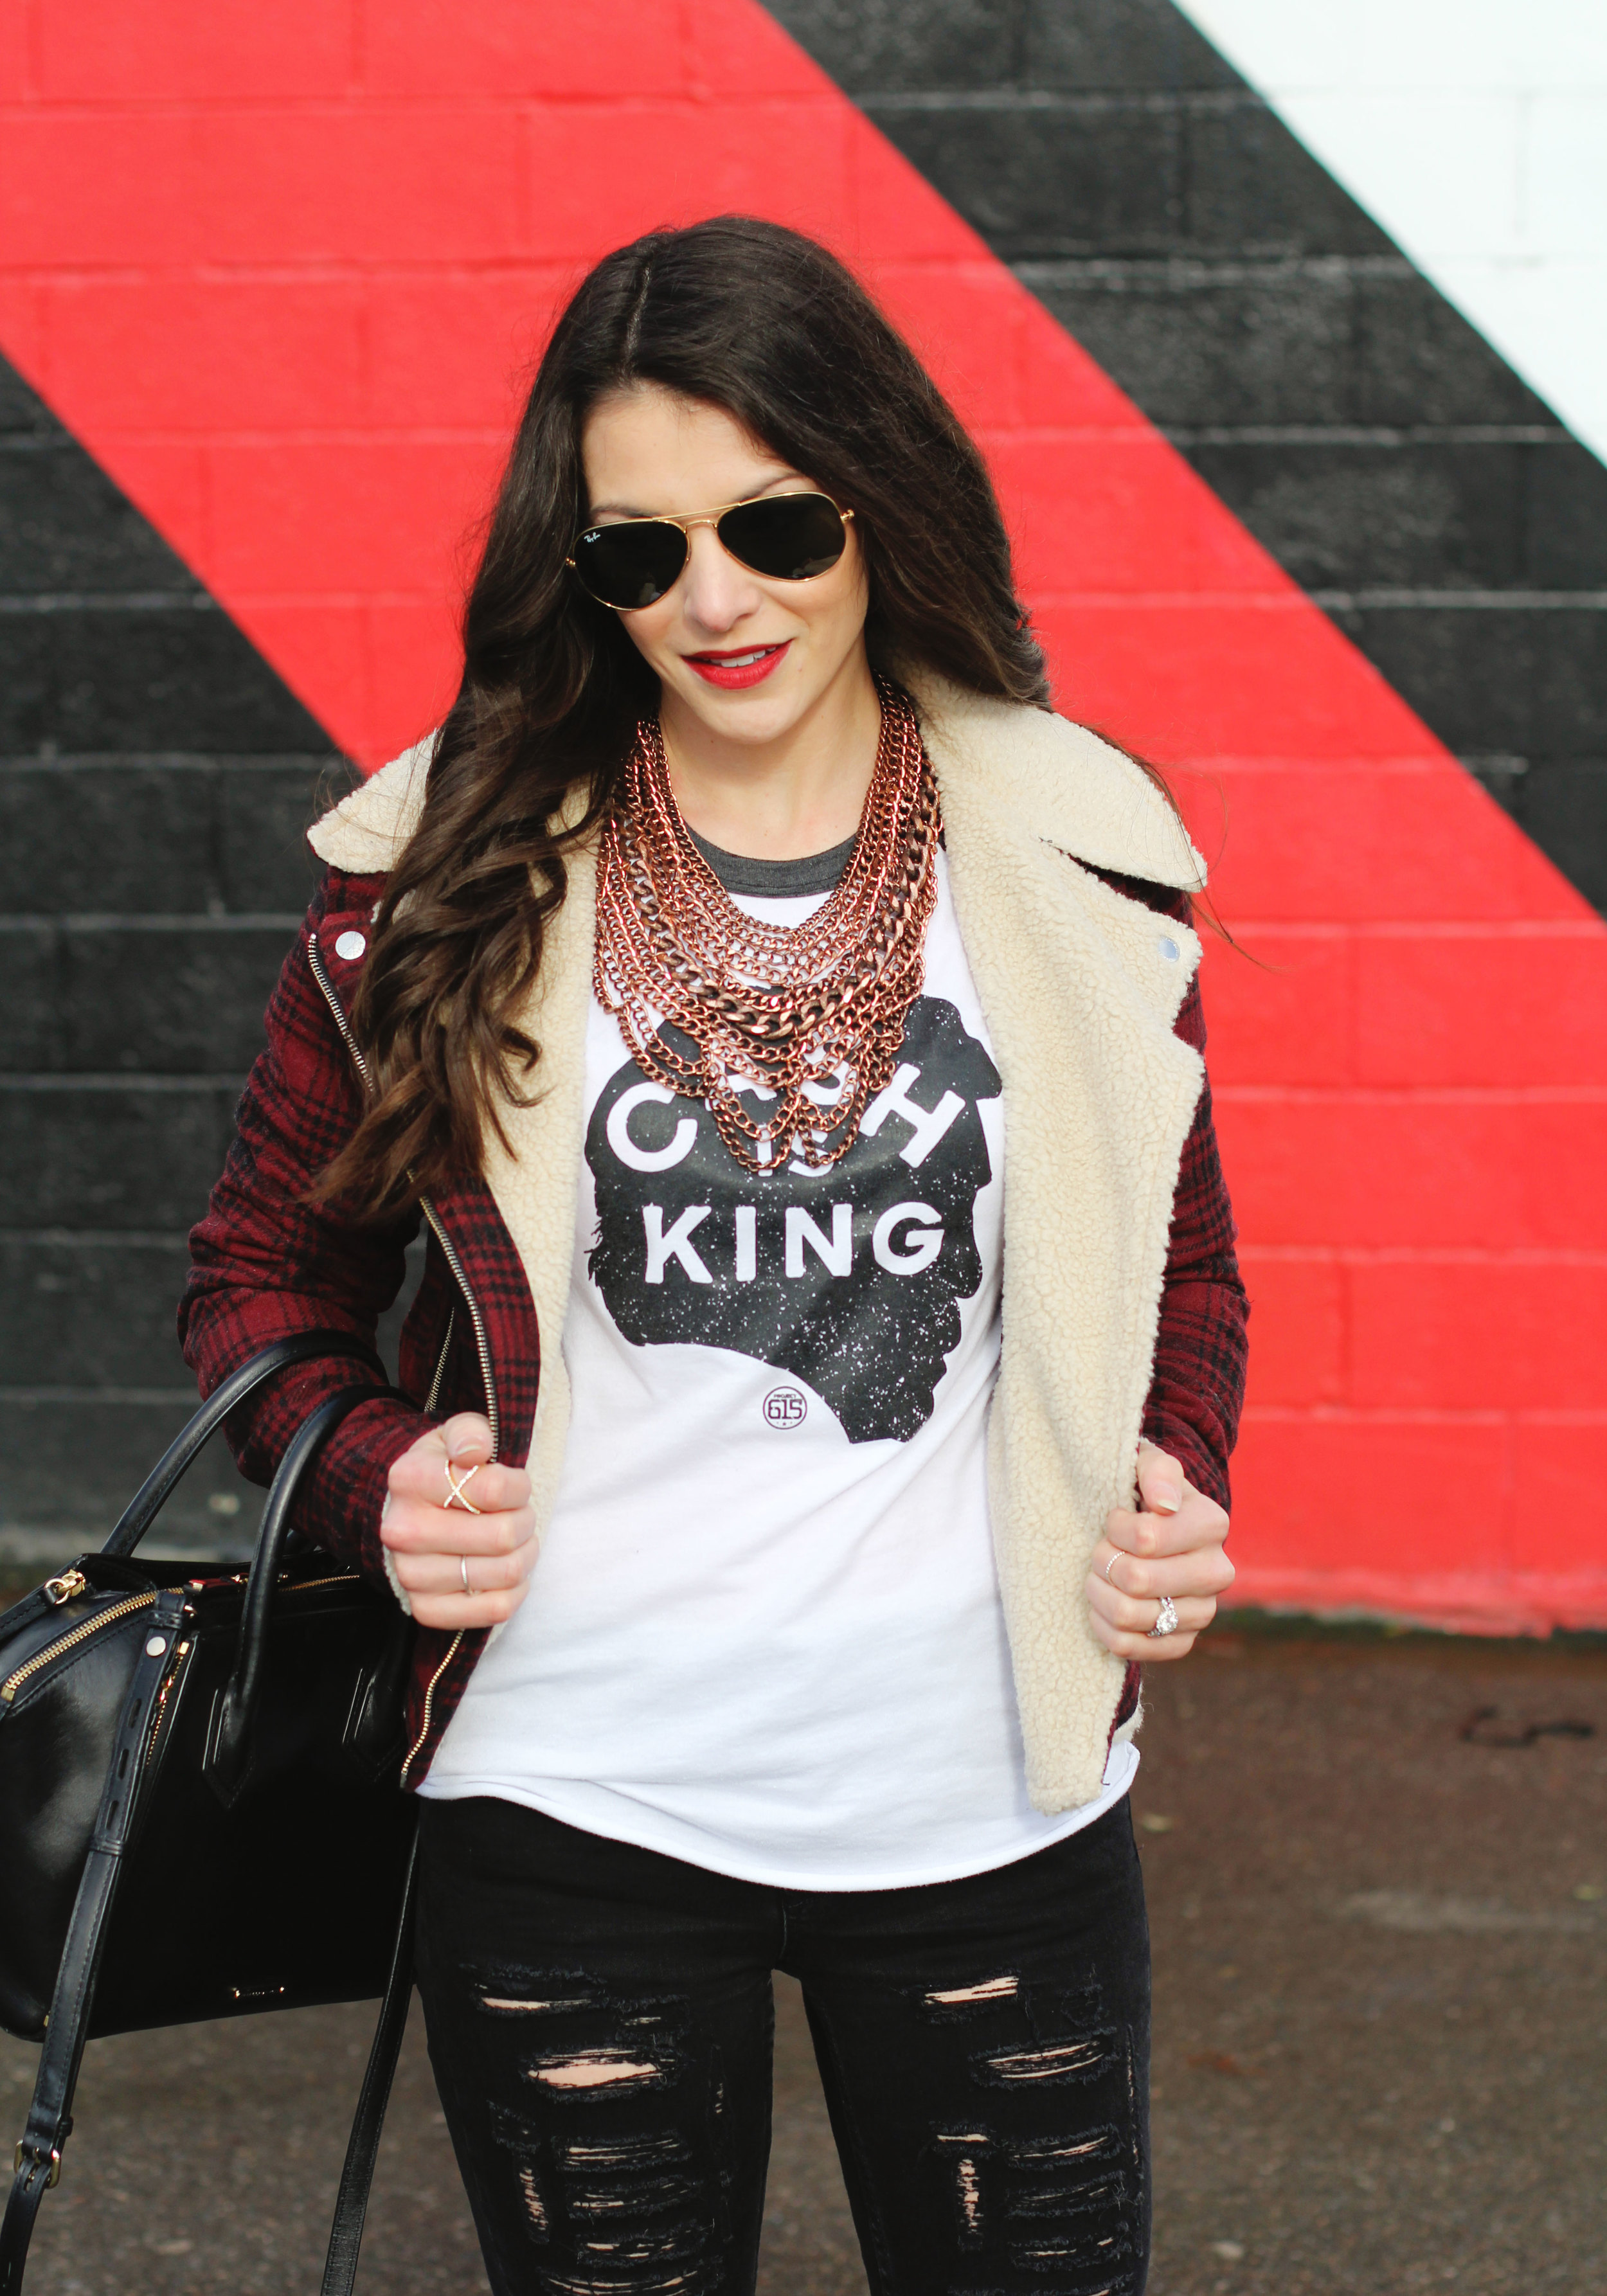 Winter OOTD, Plaid Moto Jacket, Johnny Cash Tee, Ripped Skinny Jeans, Steve Madden 'Gorgeous' Over The Knee Boots, Rebecca Minkoff 'Mini Perry' Satchel, Ray-Ban Aviators, Baublebar 'Courtney' Necklace